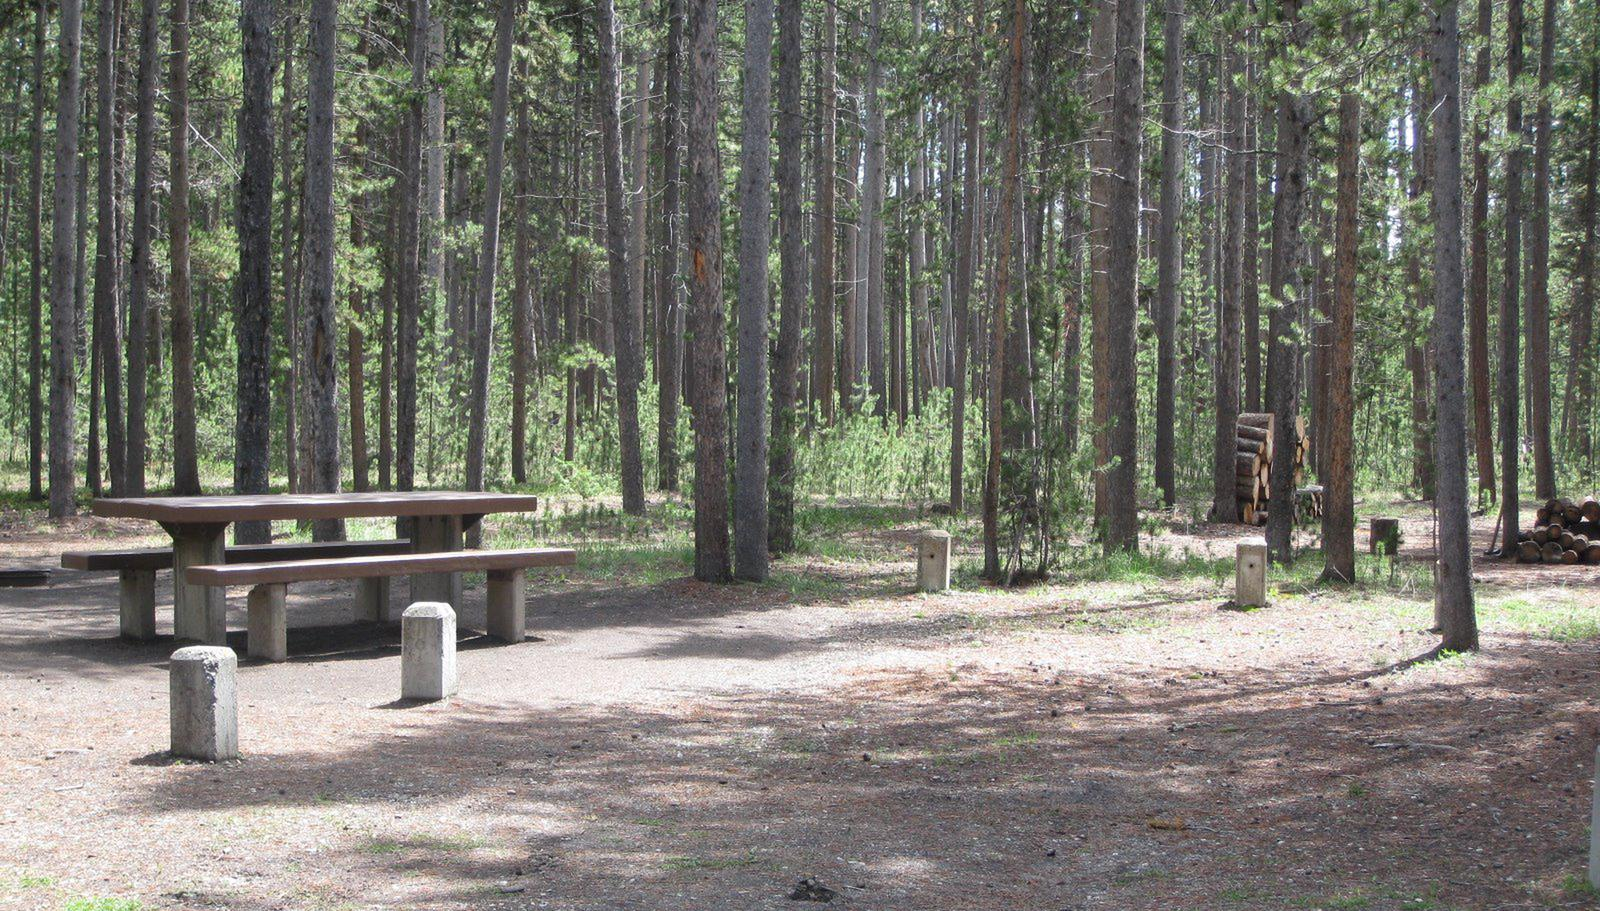 Site C19, surrounded by pine trees, picnic table & fire ringSite C19